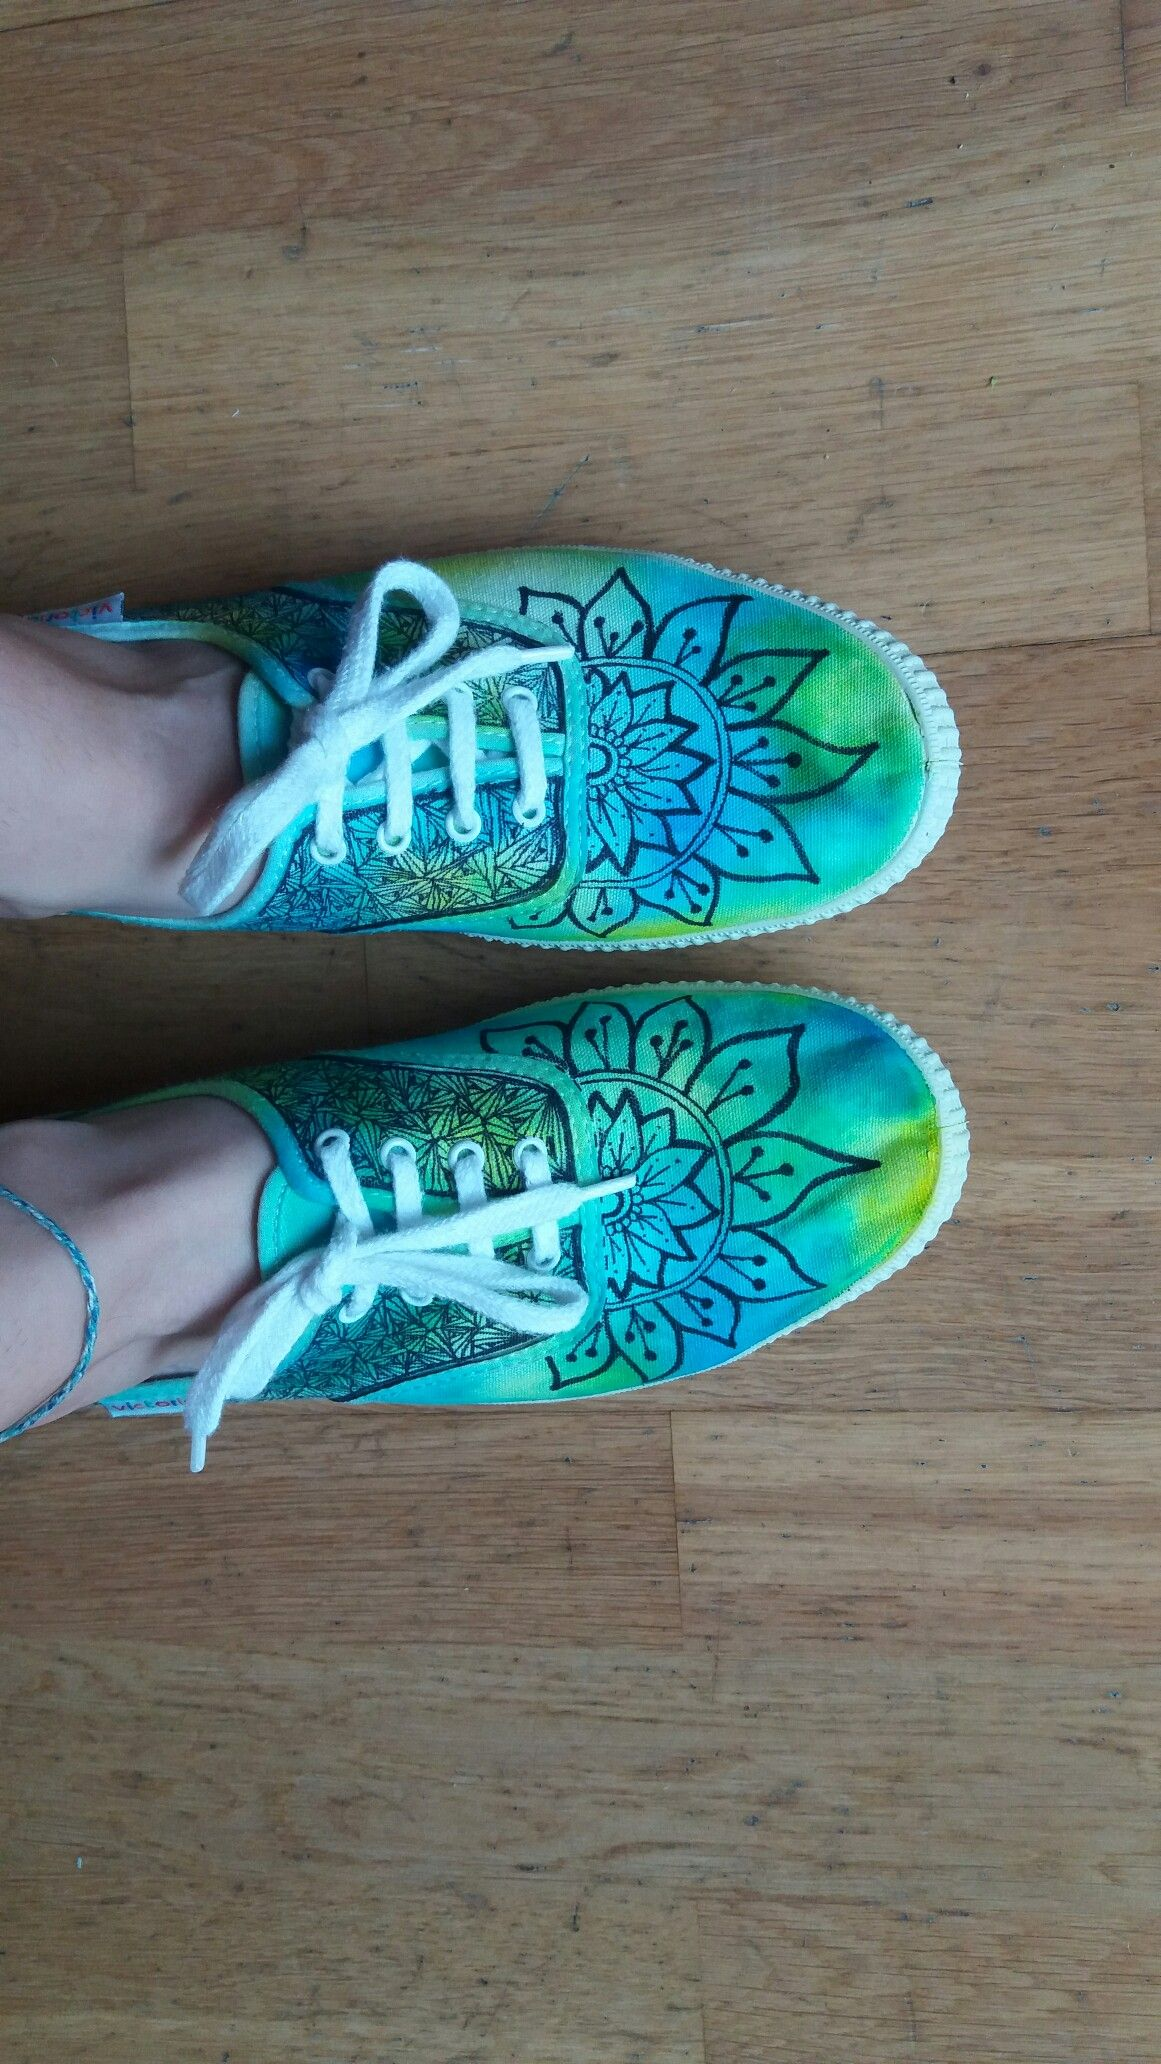 d1e7edf9aa93 Painted shoes tie dye. Made with sharpies and alcohol. Hope you like them!